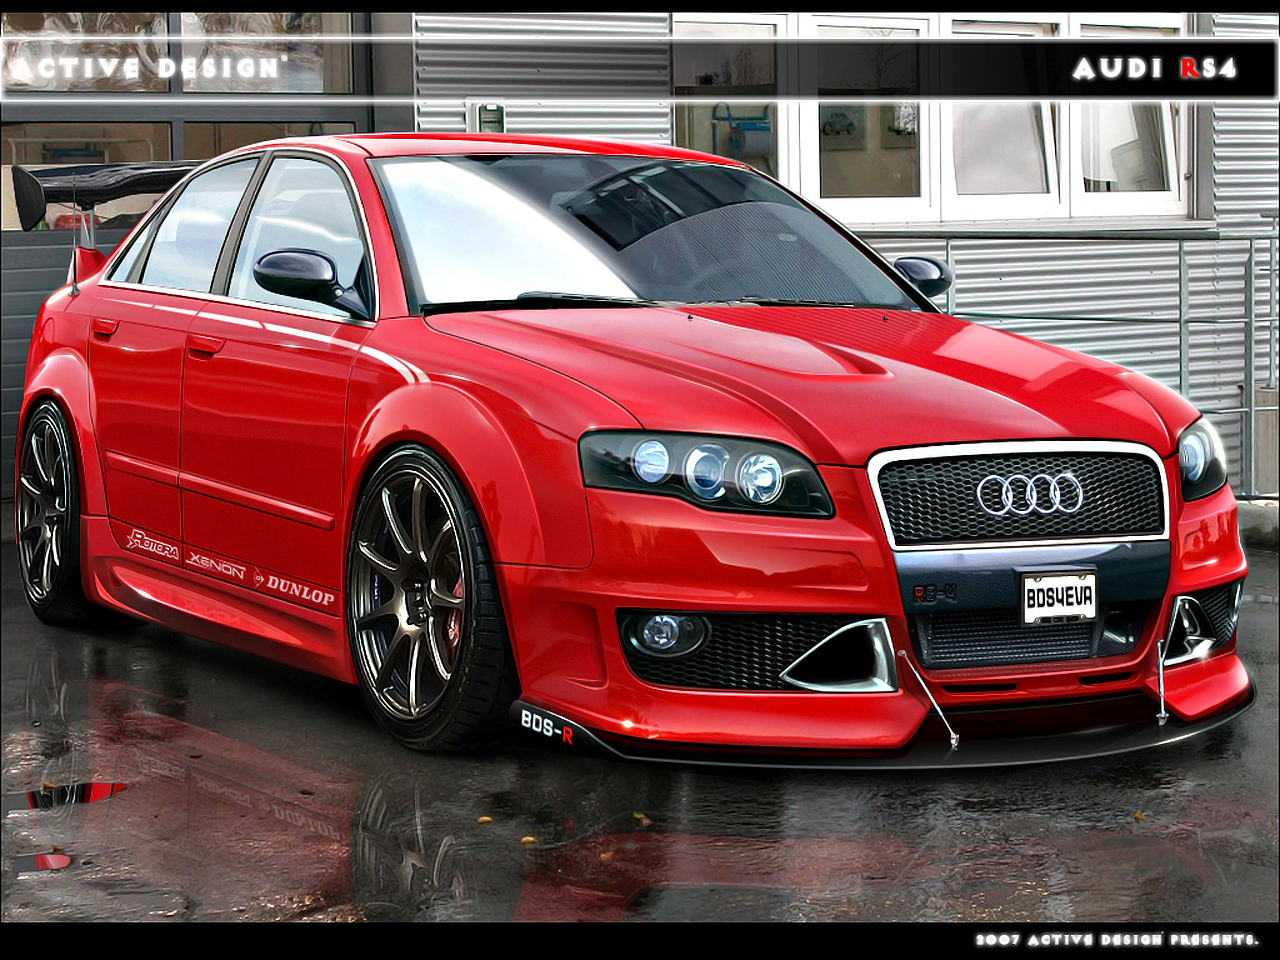 Audi RS 4 photos: